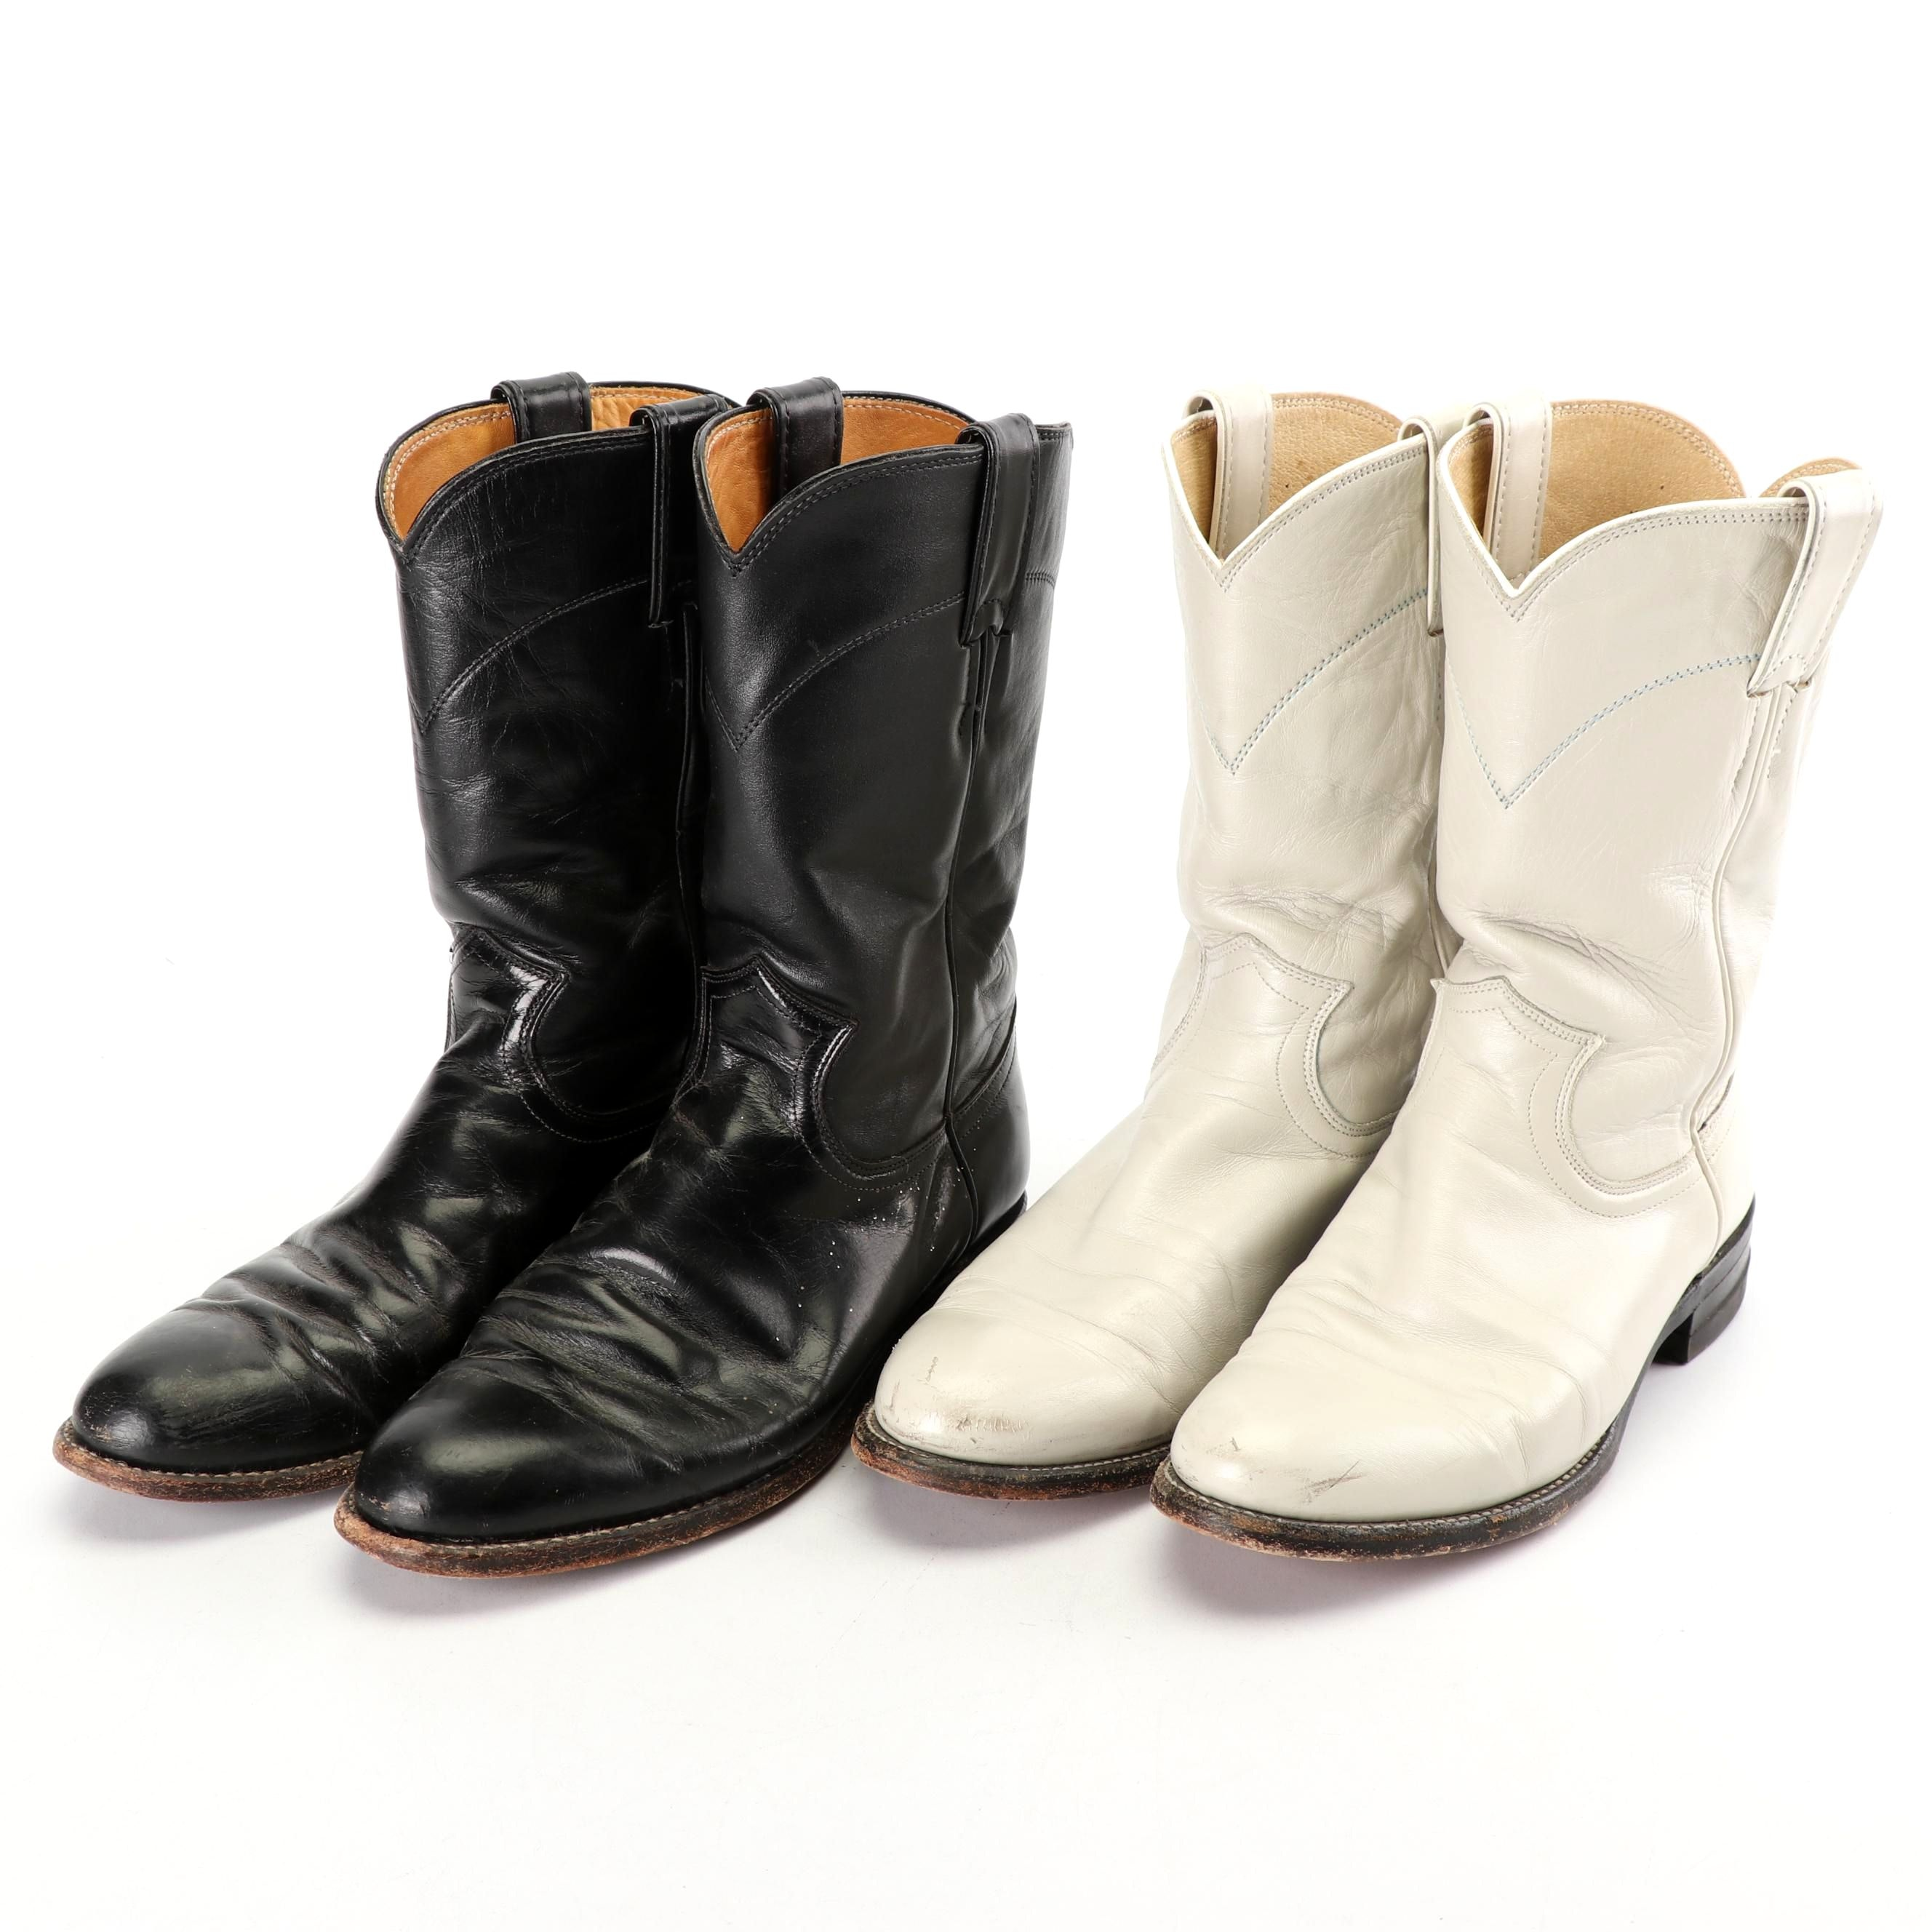 Women's Justin Western Boots in Black and Off-White Leather